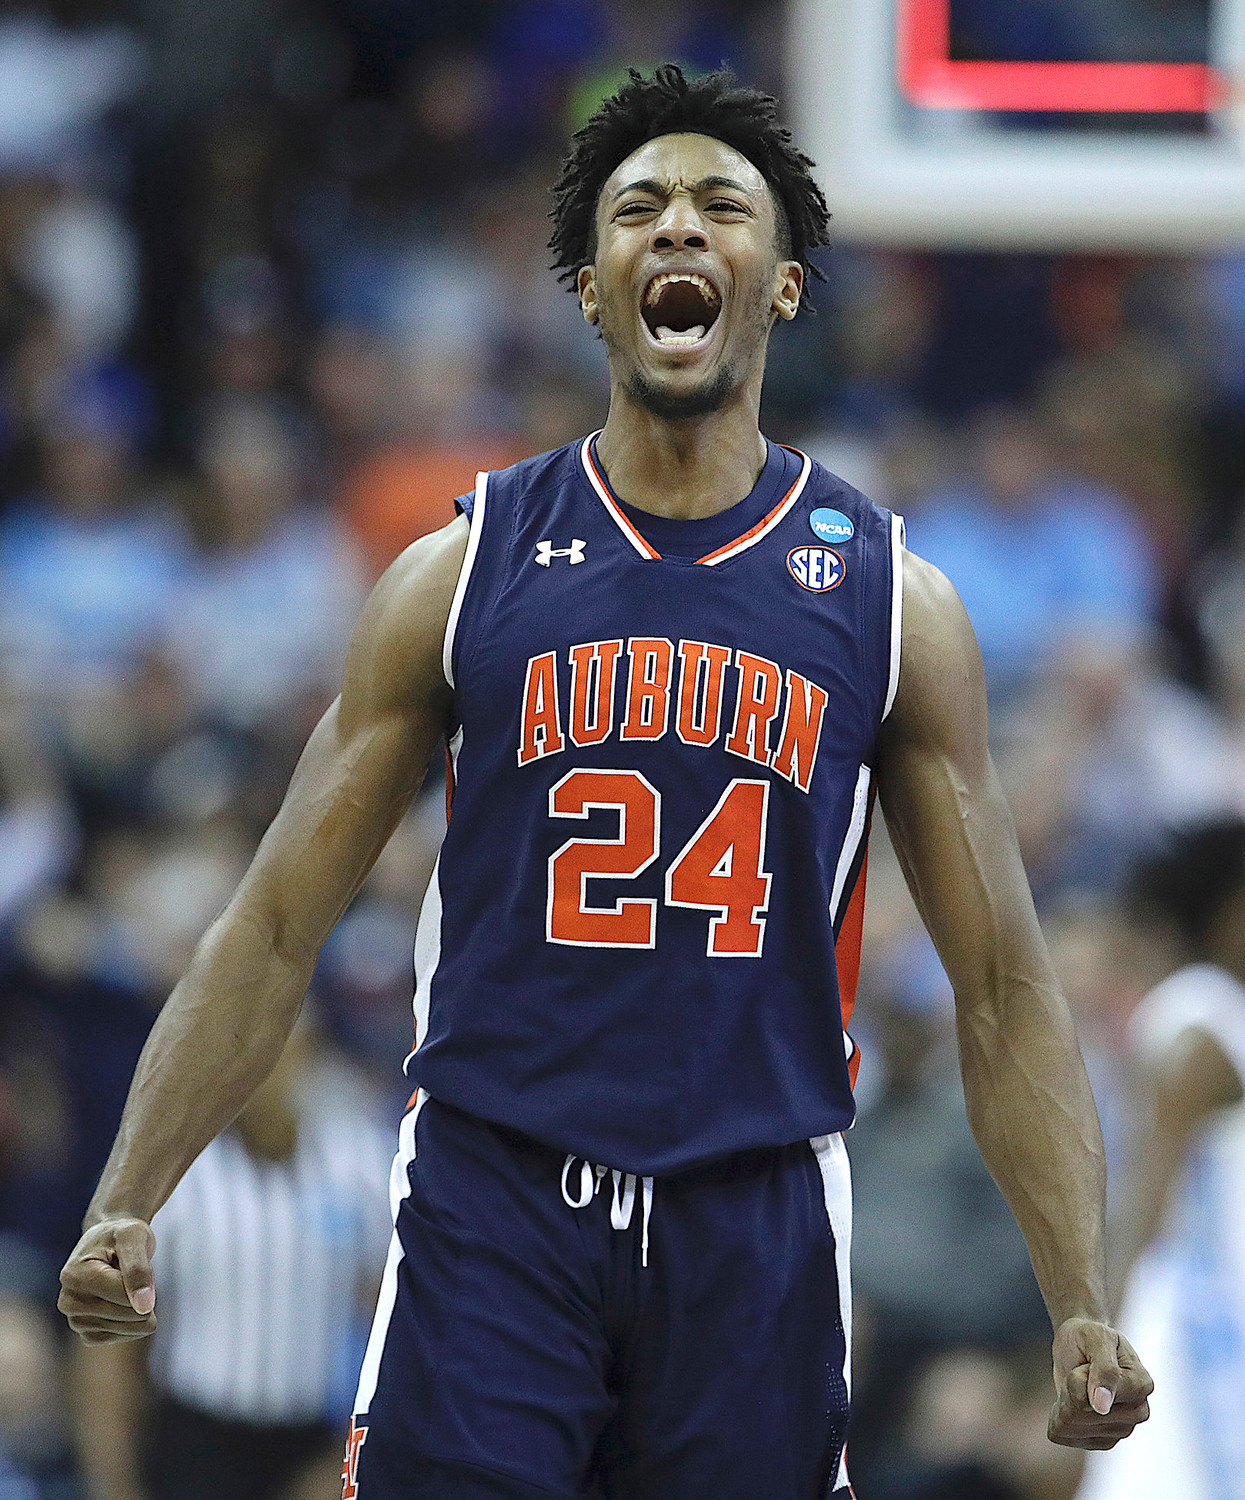 Auburn's Anfernee McLemore celebrates during the men's NCAA tournament college basketball Midwest Regional semifinal game against North Carolina Friday in Kansas City, Mo. Auburn won 97-80.